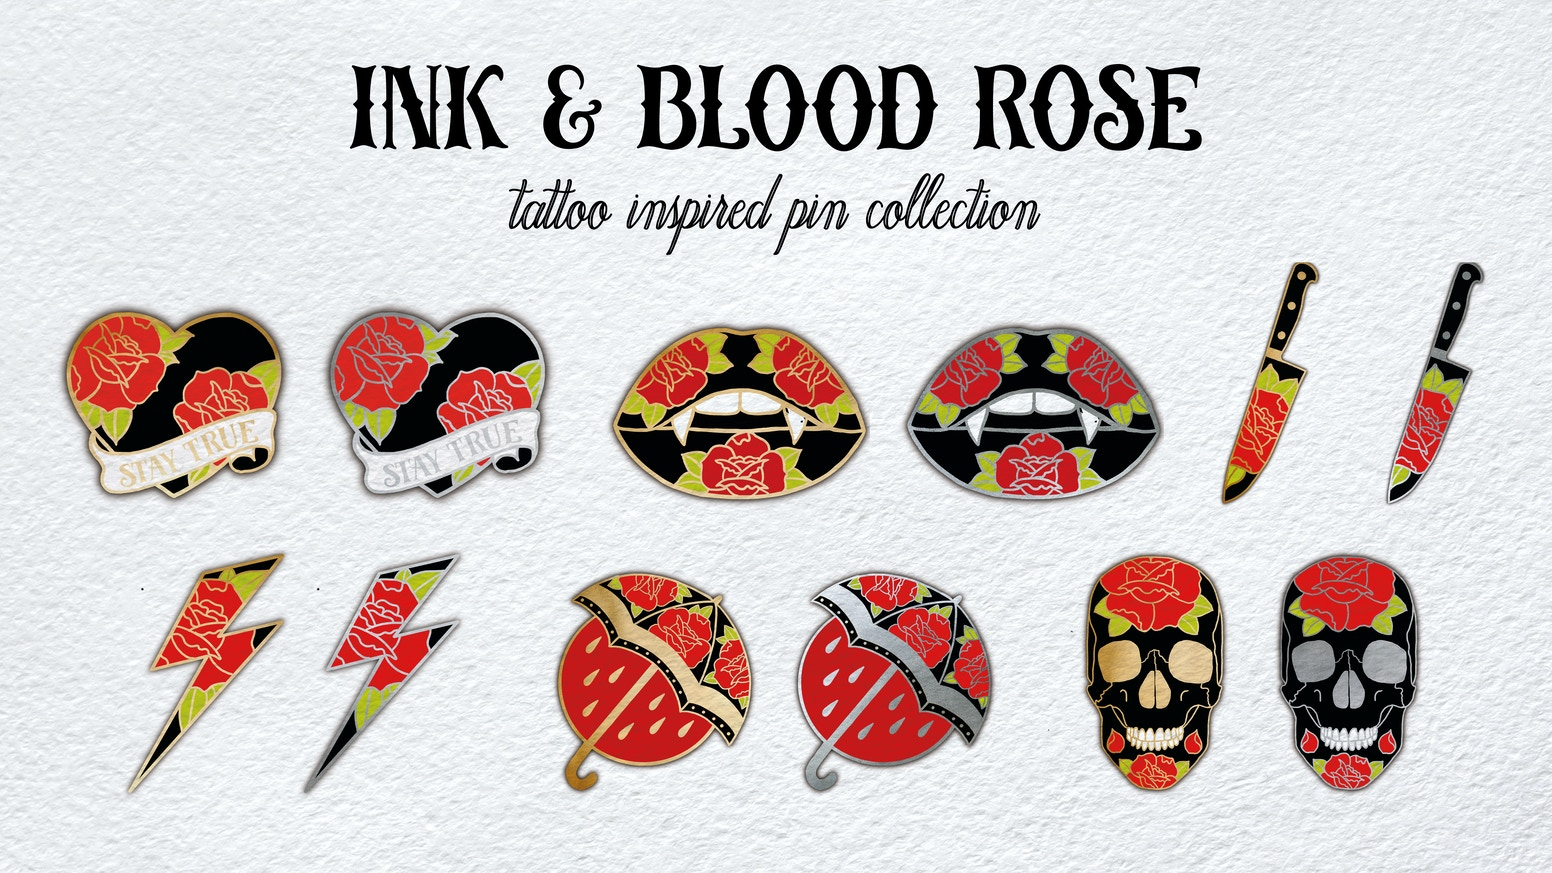 Set of 7 hard enamel pins inspired by traditional tattoo flash tattoo culture.